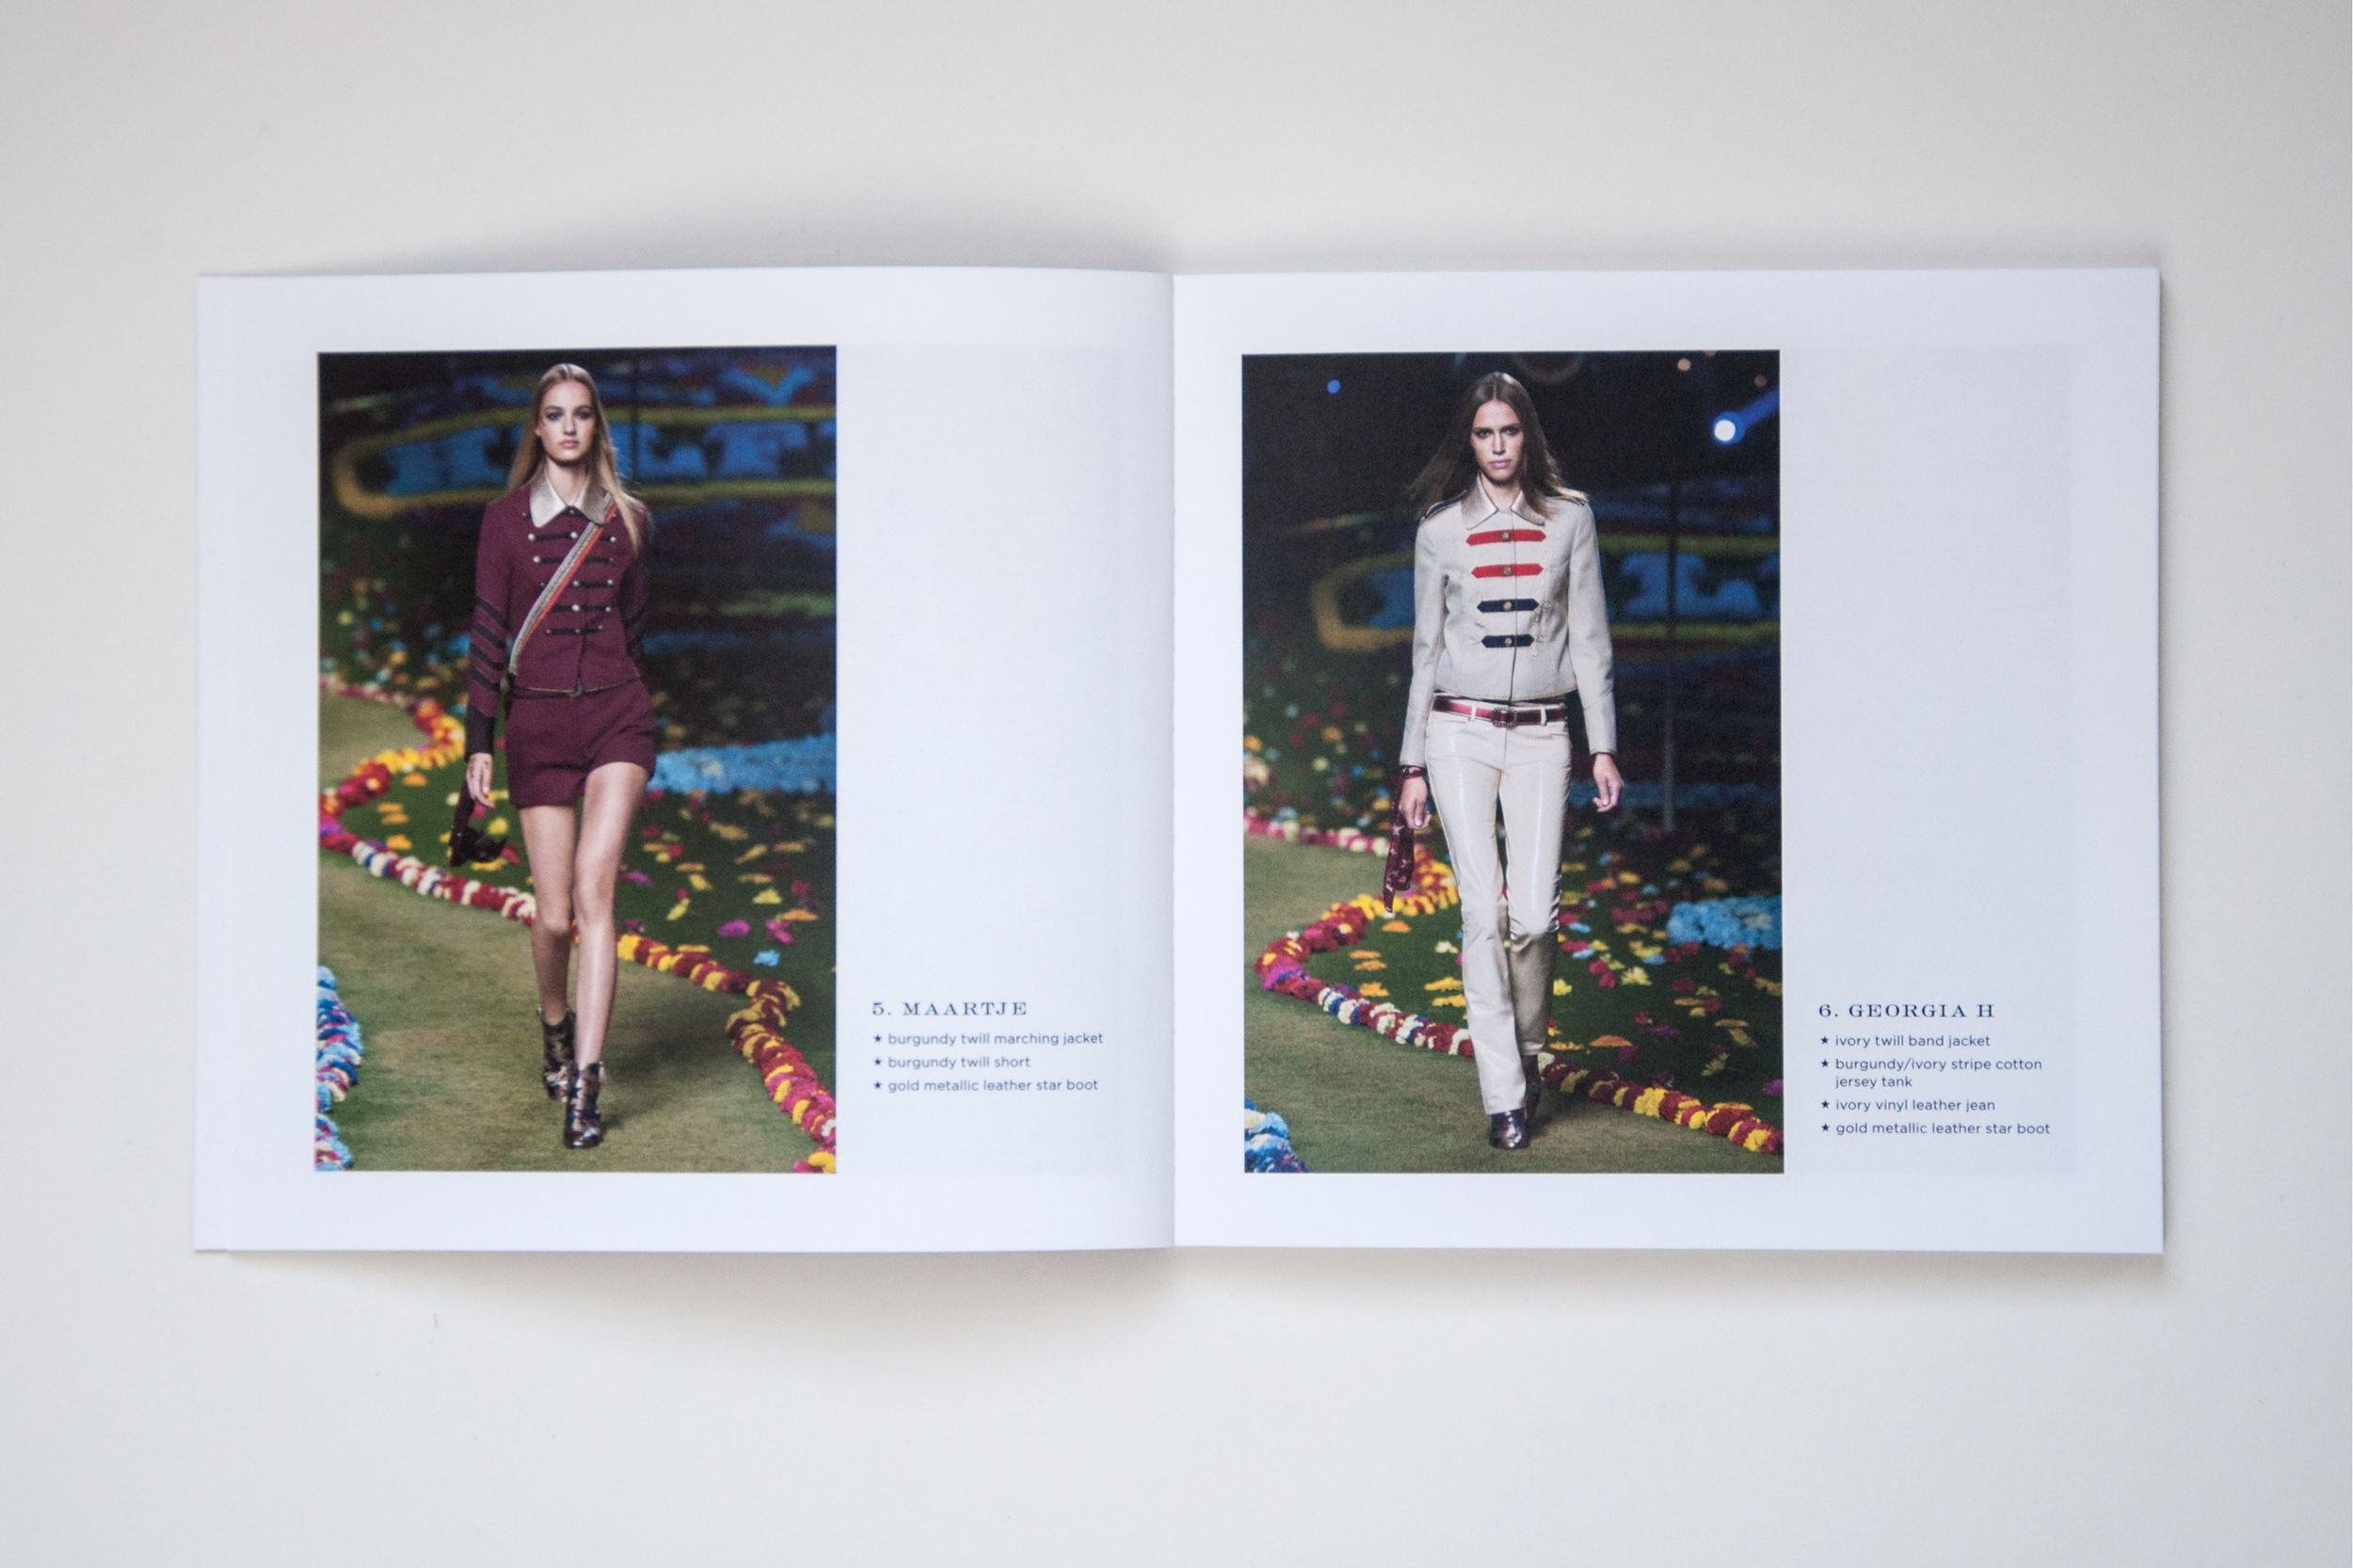 hilfiger collection spring 2015 runway show music festival kendall jenner is the star of the show